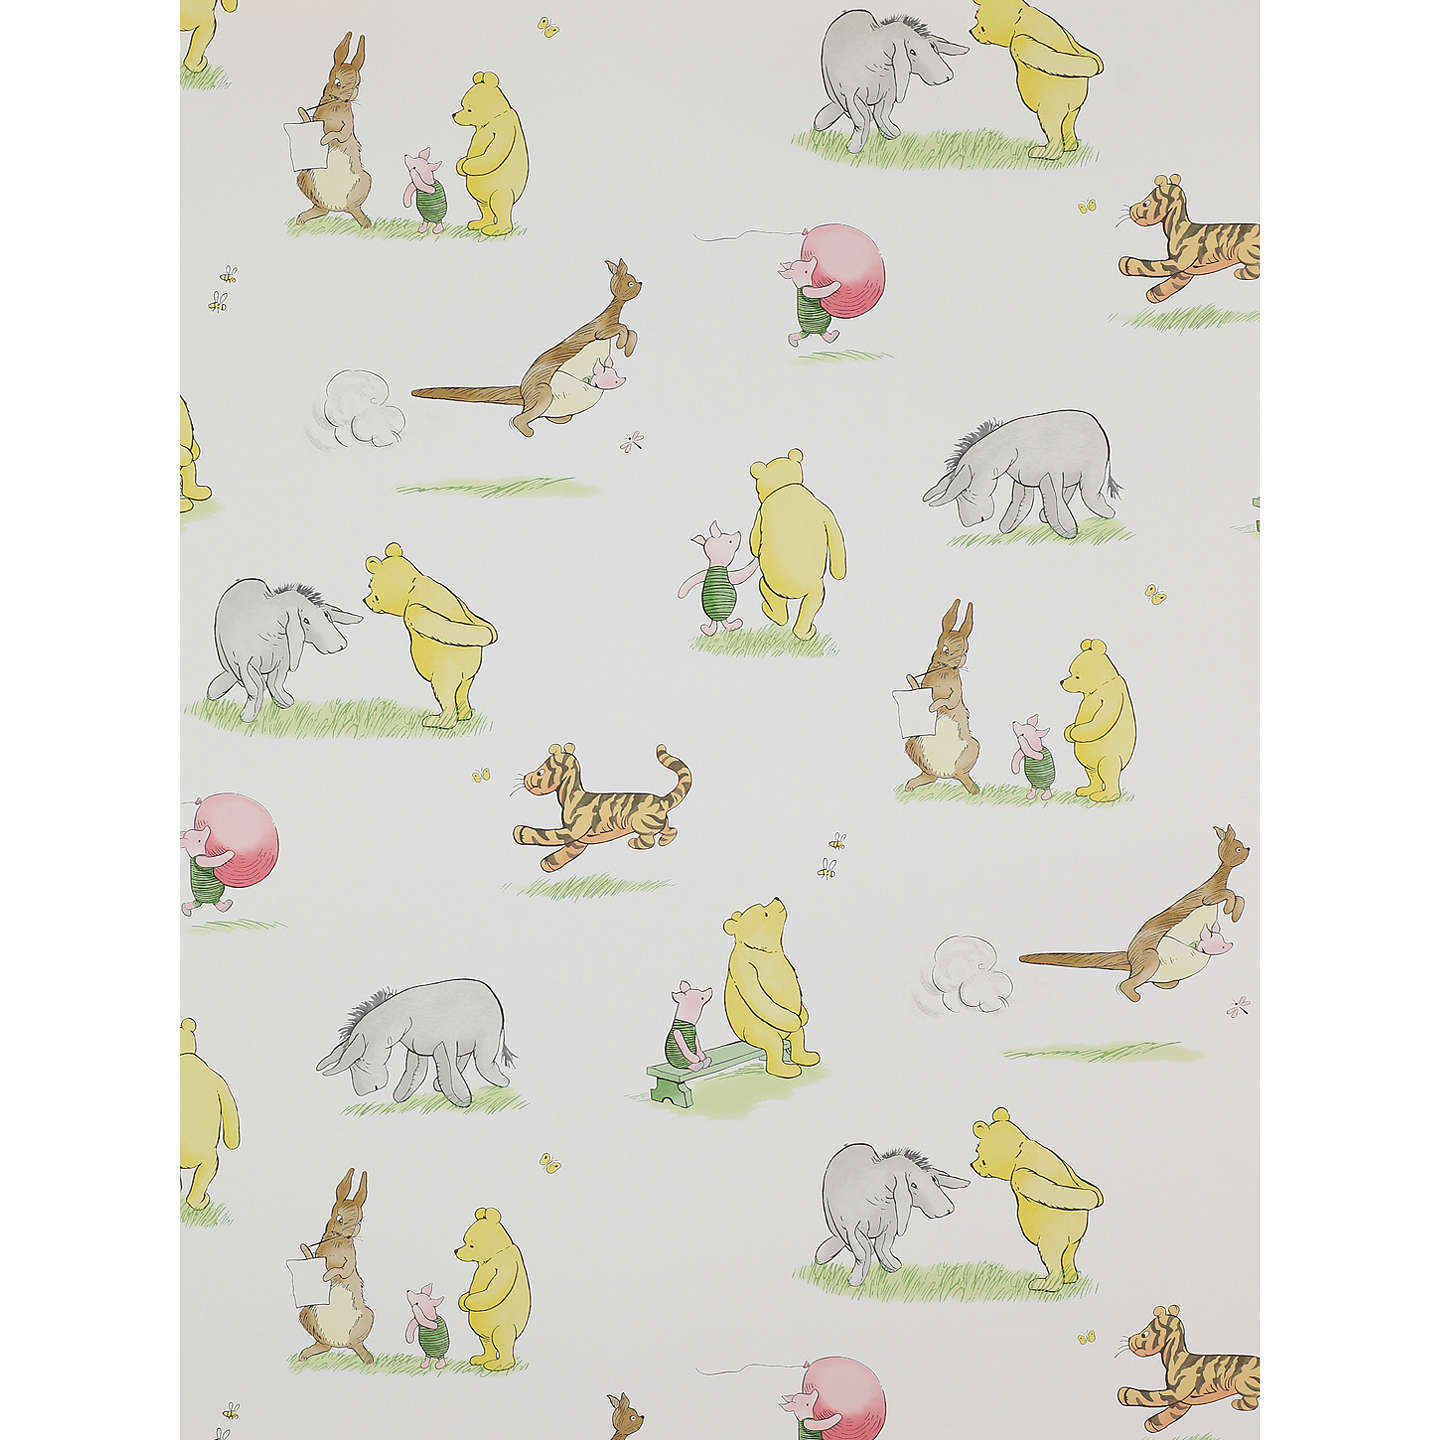 Jane churchill winnie the pooh friends wallpaper at john lewis buyjane churchill winnie the pooh friends wallpaper j127w 01 online at johnlewis gumiabroncs Image collections